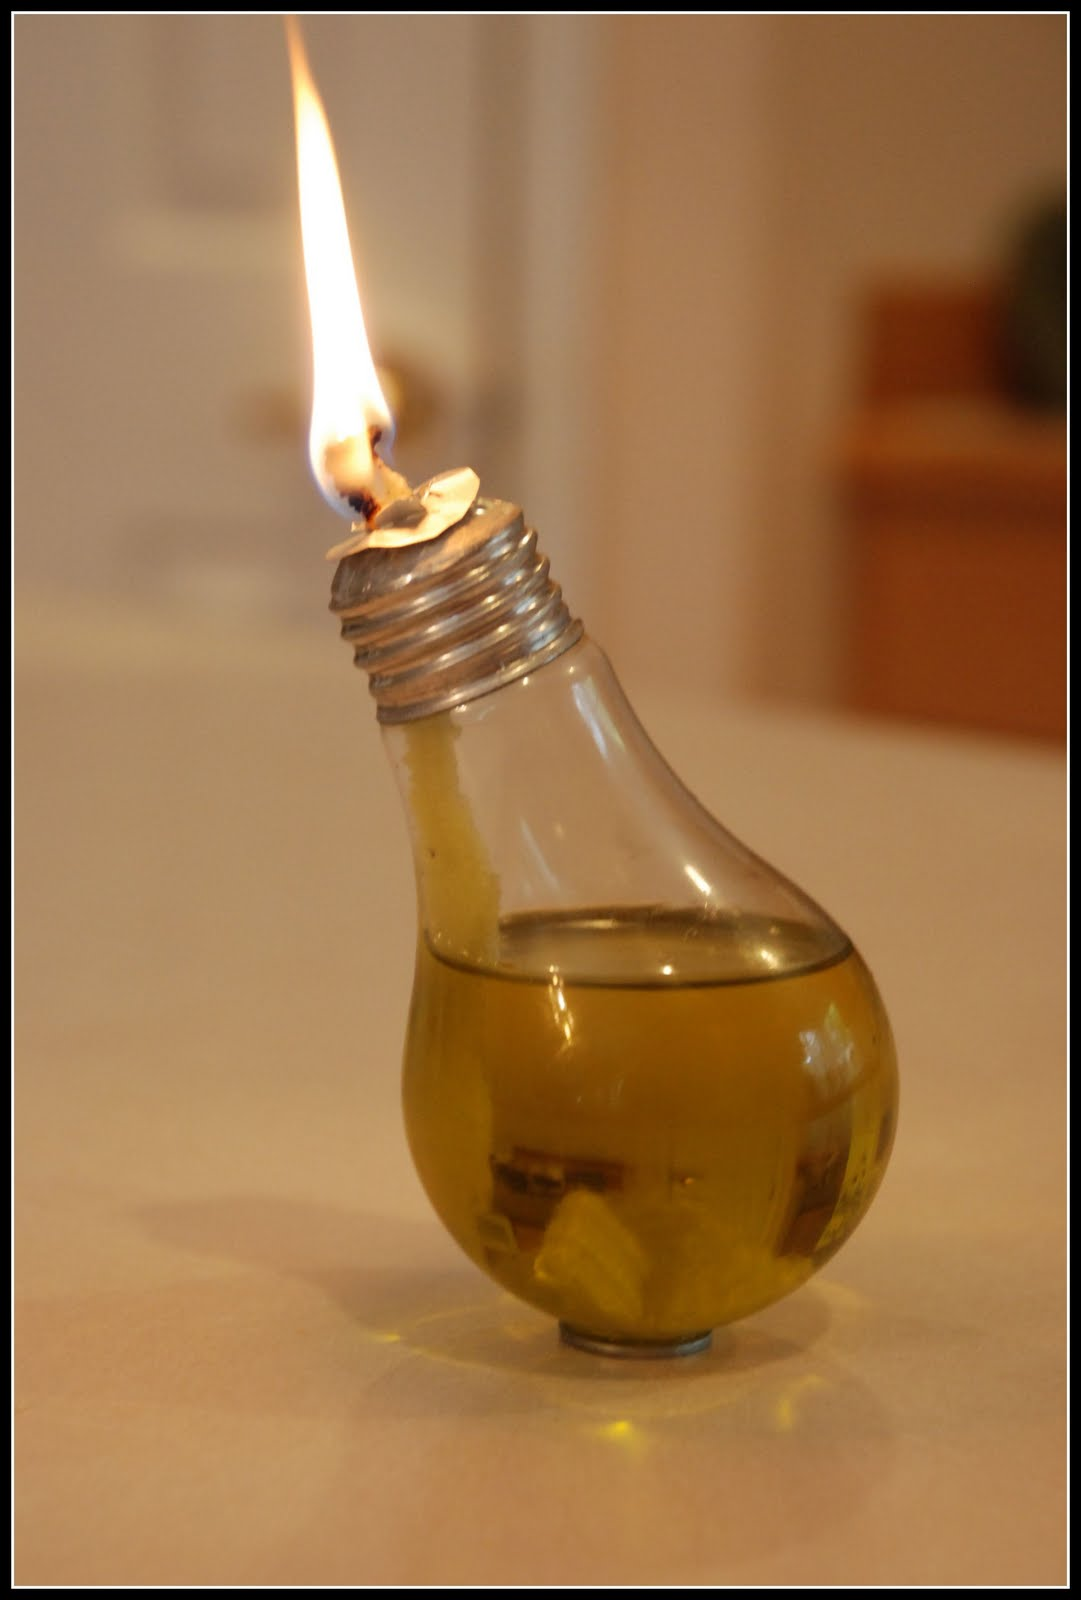 Homemade Serenity: Make It! Light Bulb Oil Lamp